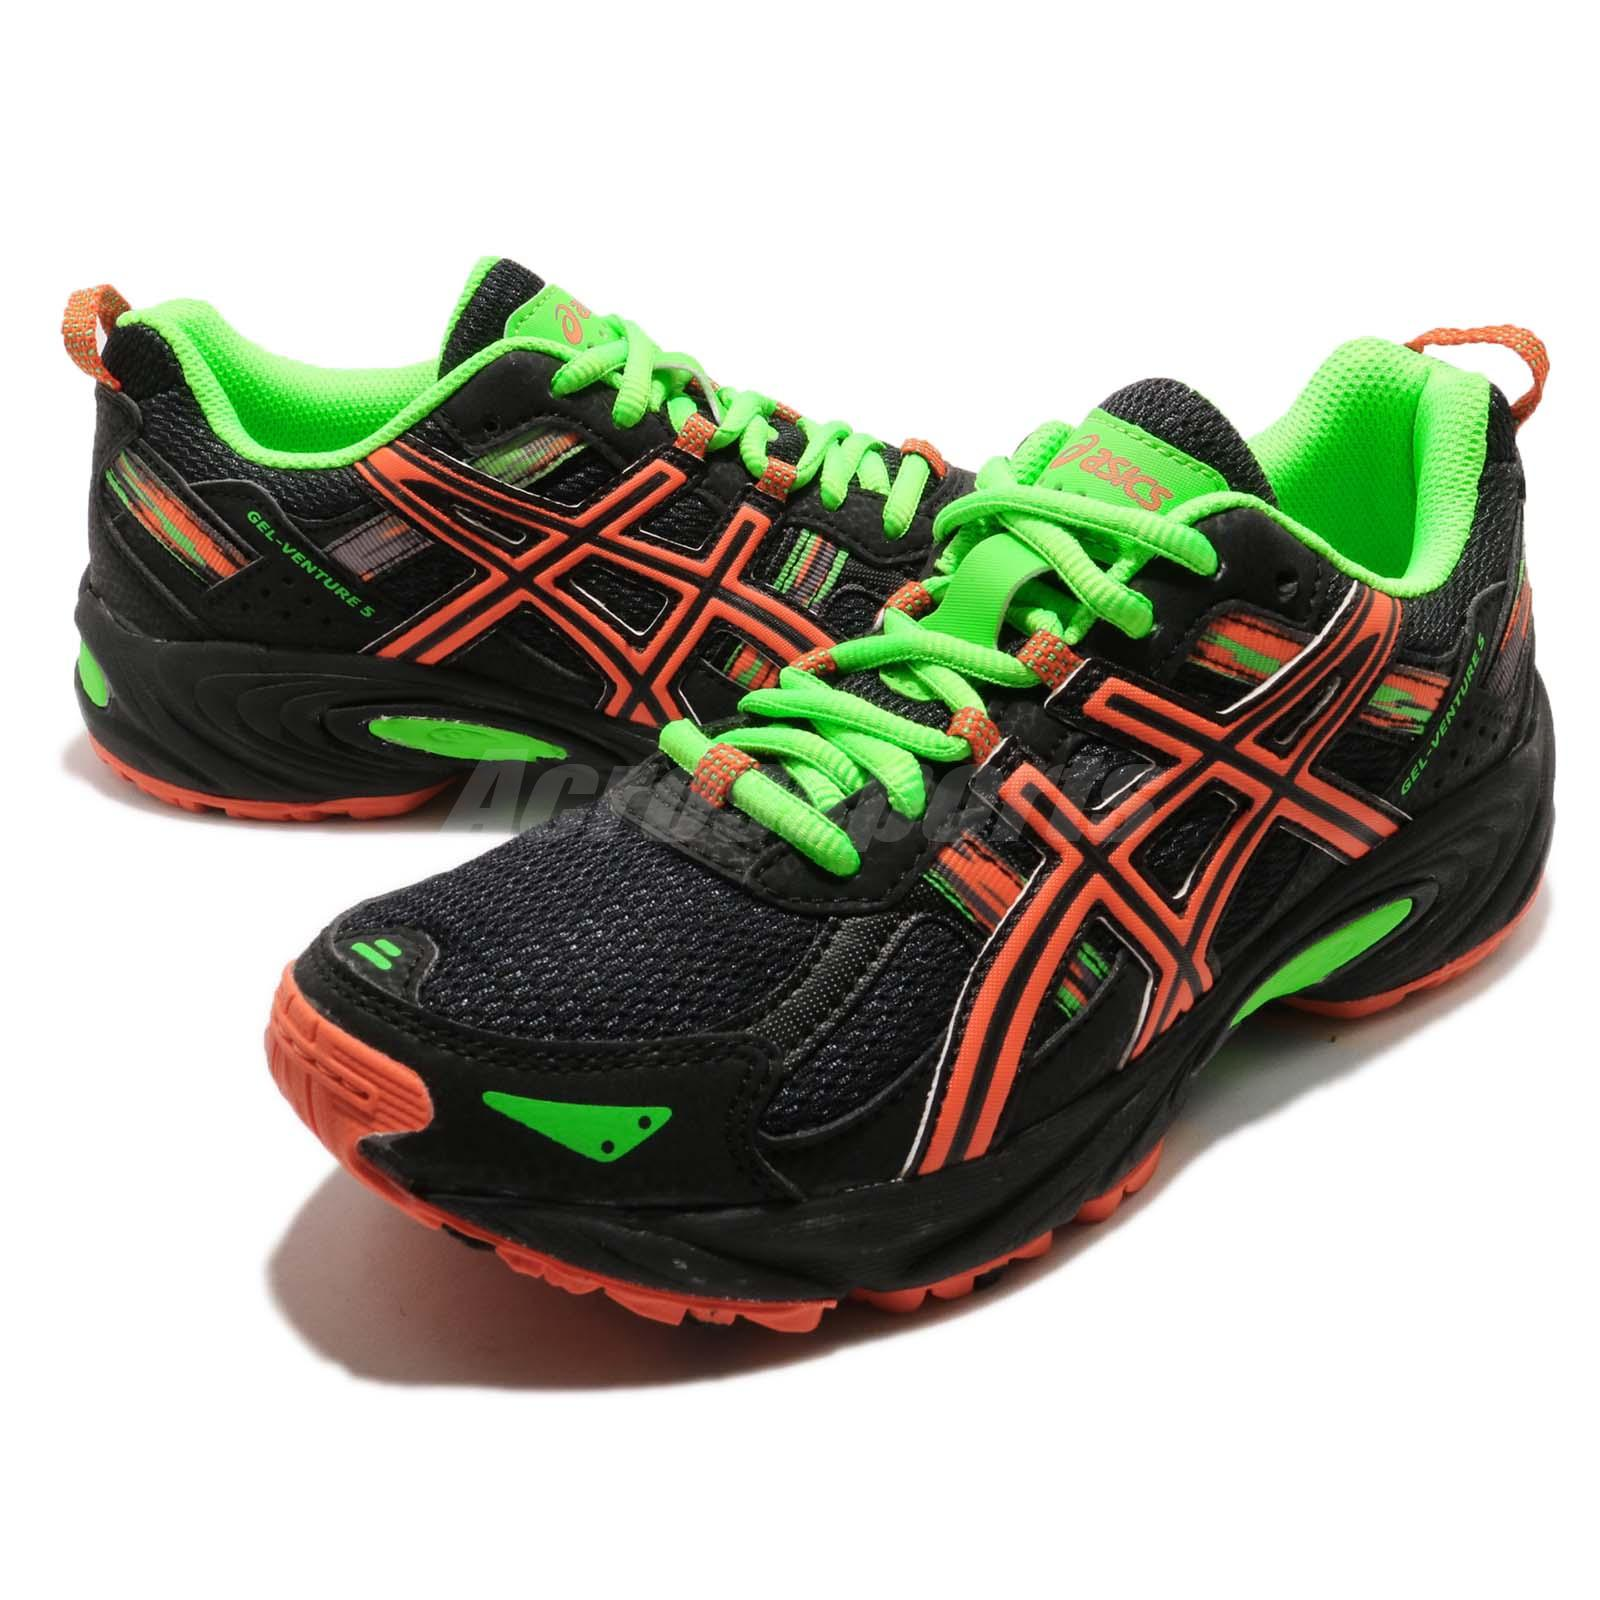 e5432427f3 Details about Asics Gel-Venture 5 GS Black Orange Green Kid Trail Running  Shoes C584N-9009